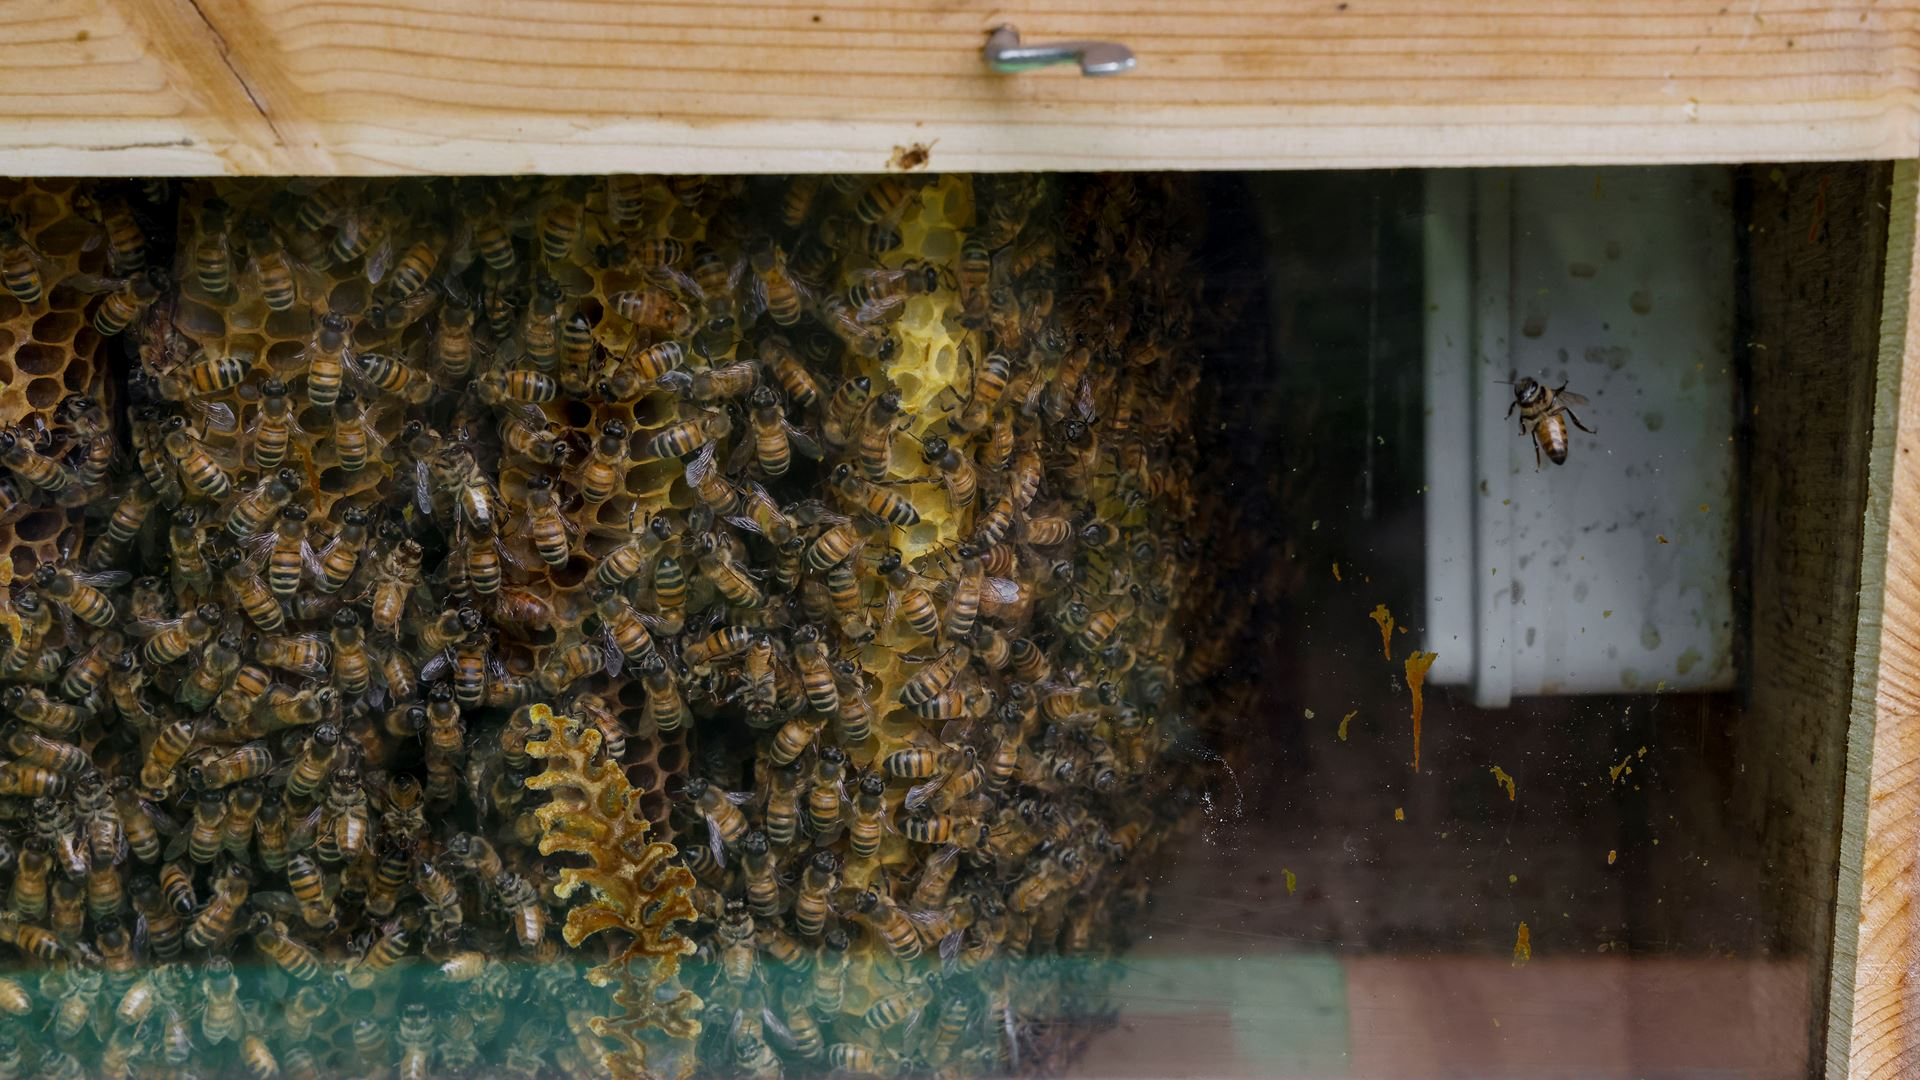 May 20, World Bee Day: Since 2016 Lamborghini has worked with bees in an environmental biomonitoring project - Image 2